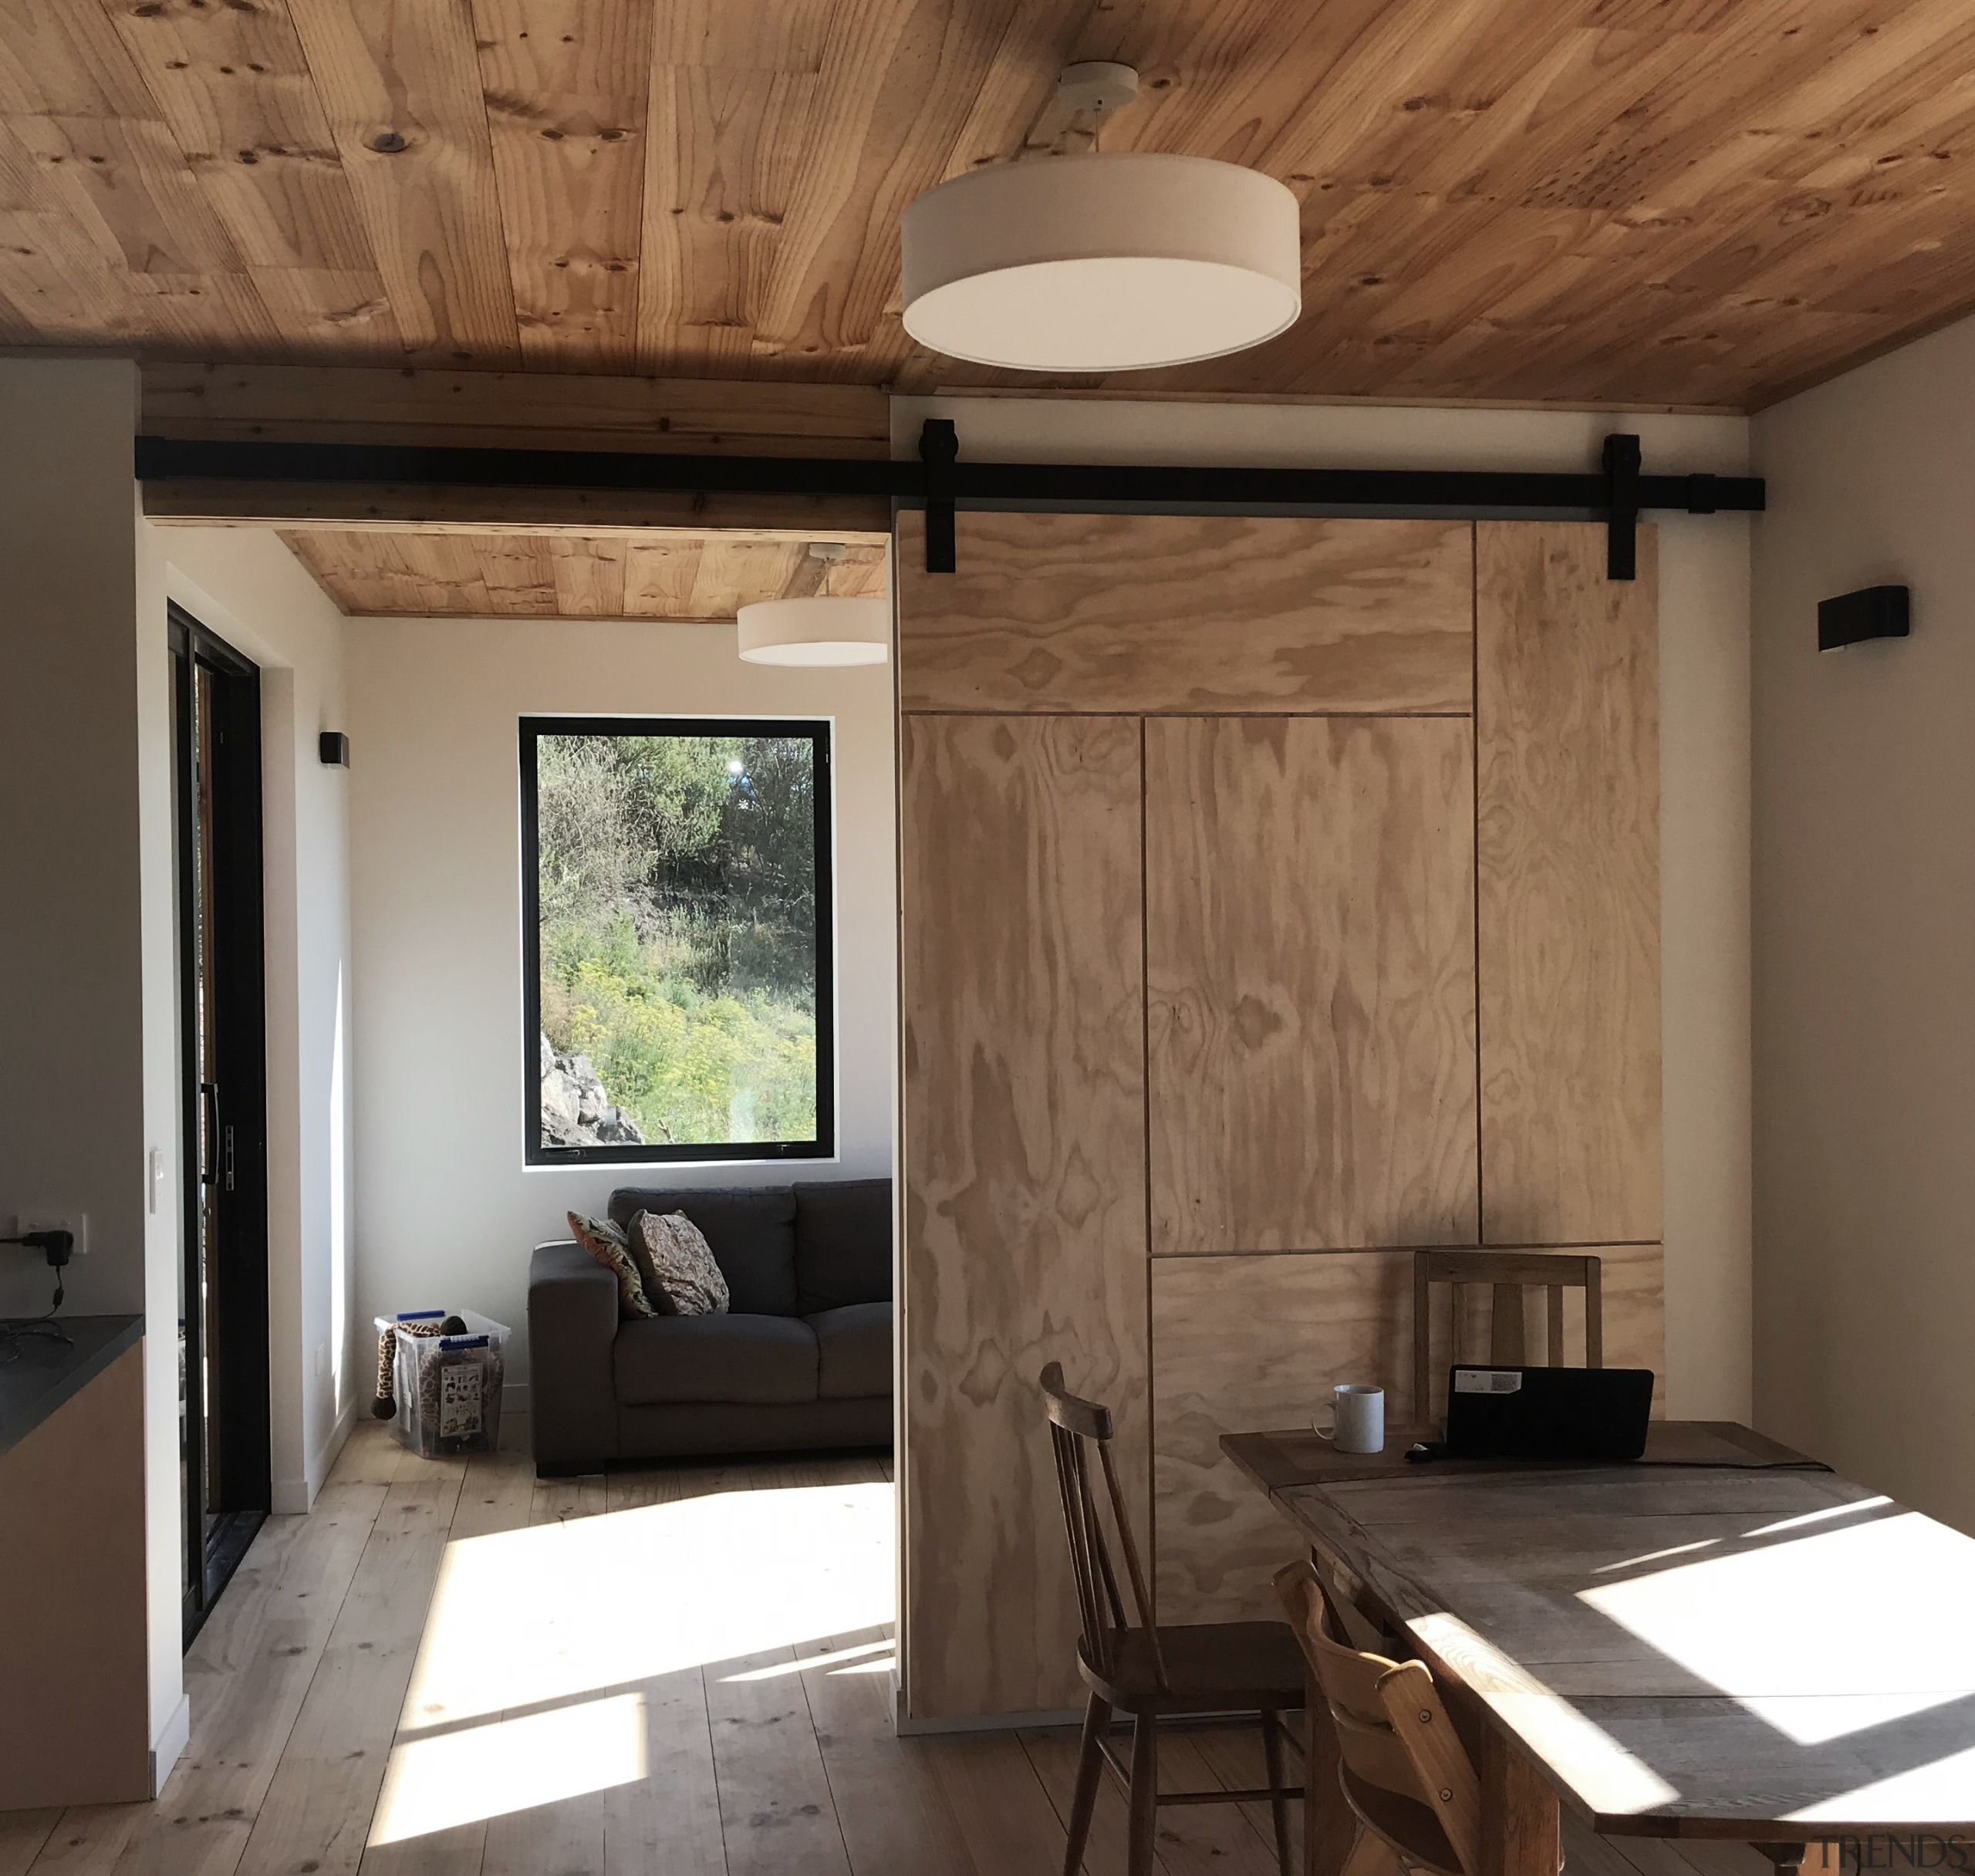 Homes should no longer be designed and constructed architecture, beam, building, ceiling, daylighting, door, floor, flooring, furniture, hardwood, home, house, interior design, loft, plywood, property, room, table, wall, window, wood, wood flooring, brown, black